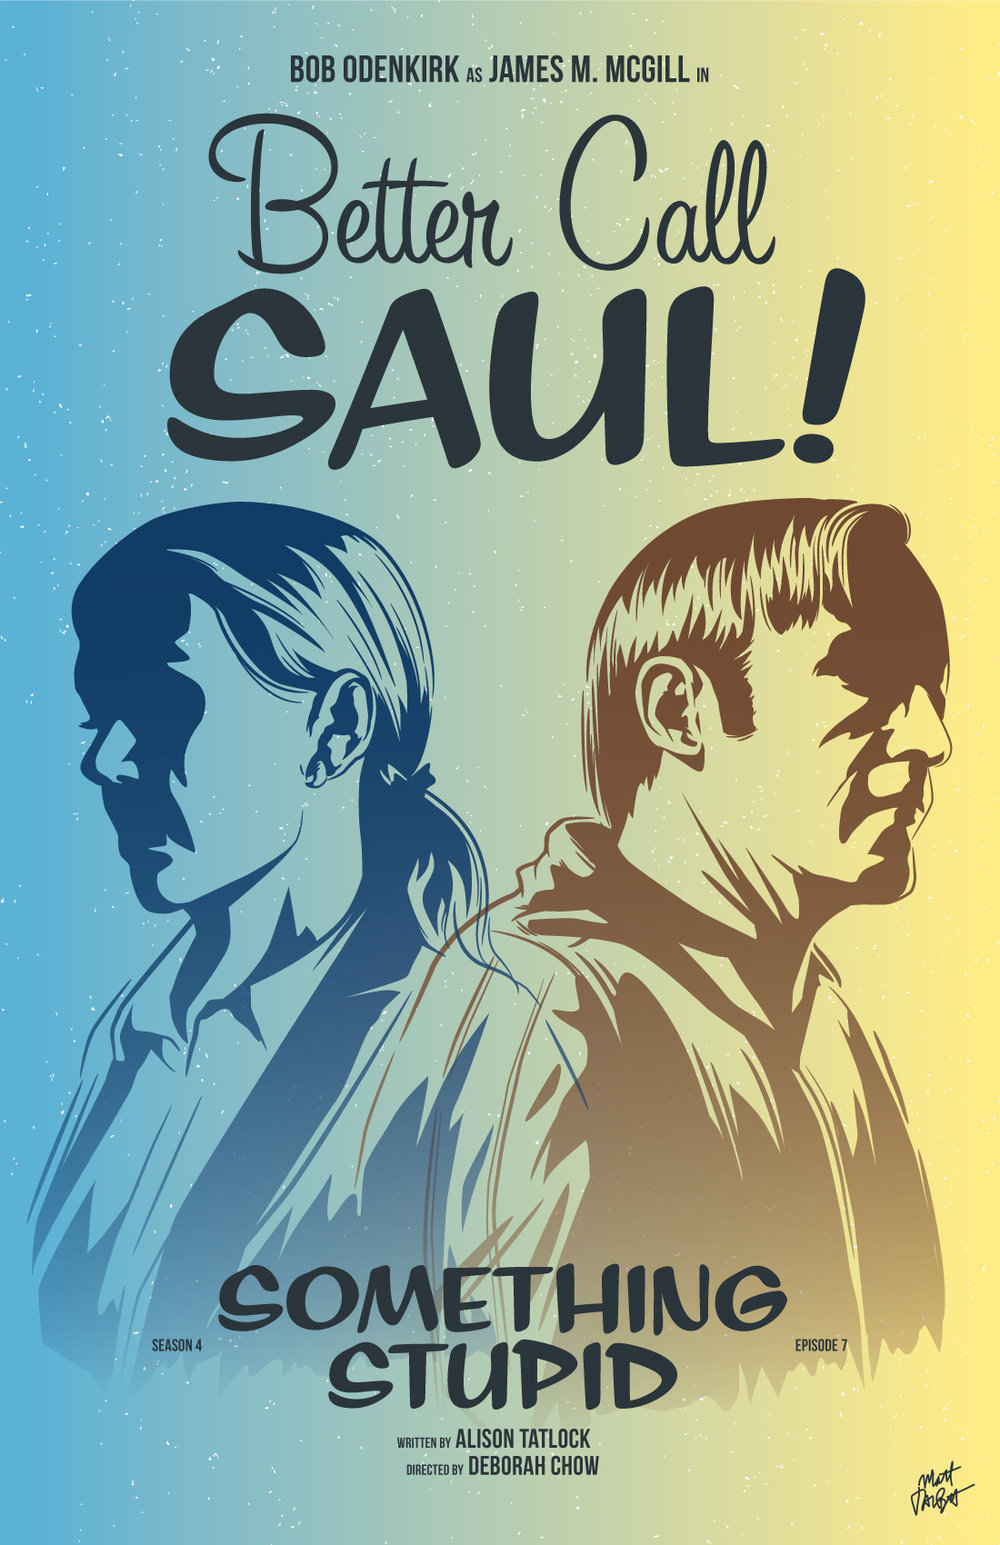 Better Call Saul season 4 episode 7, Something Stupid, poster by Matt Talbot